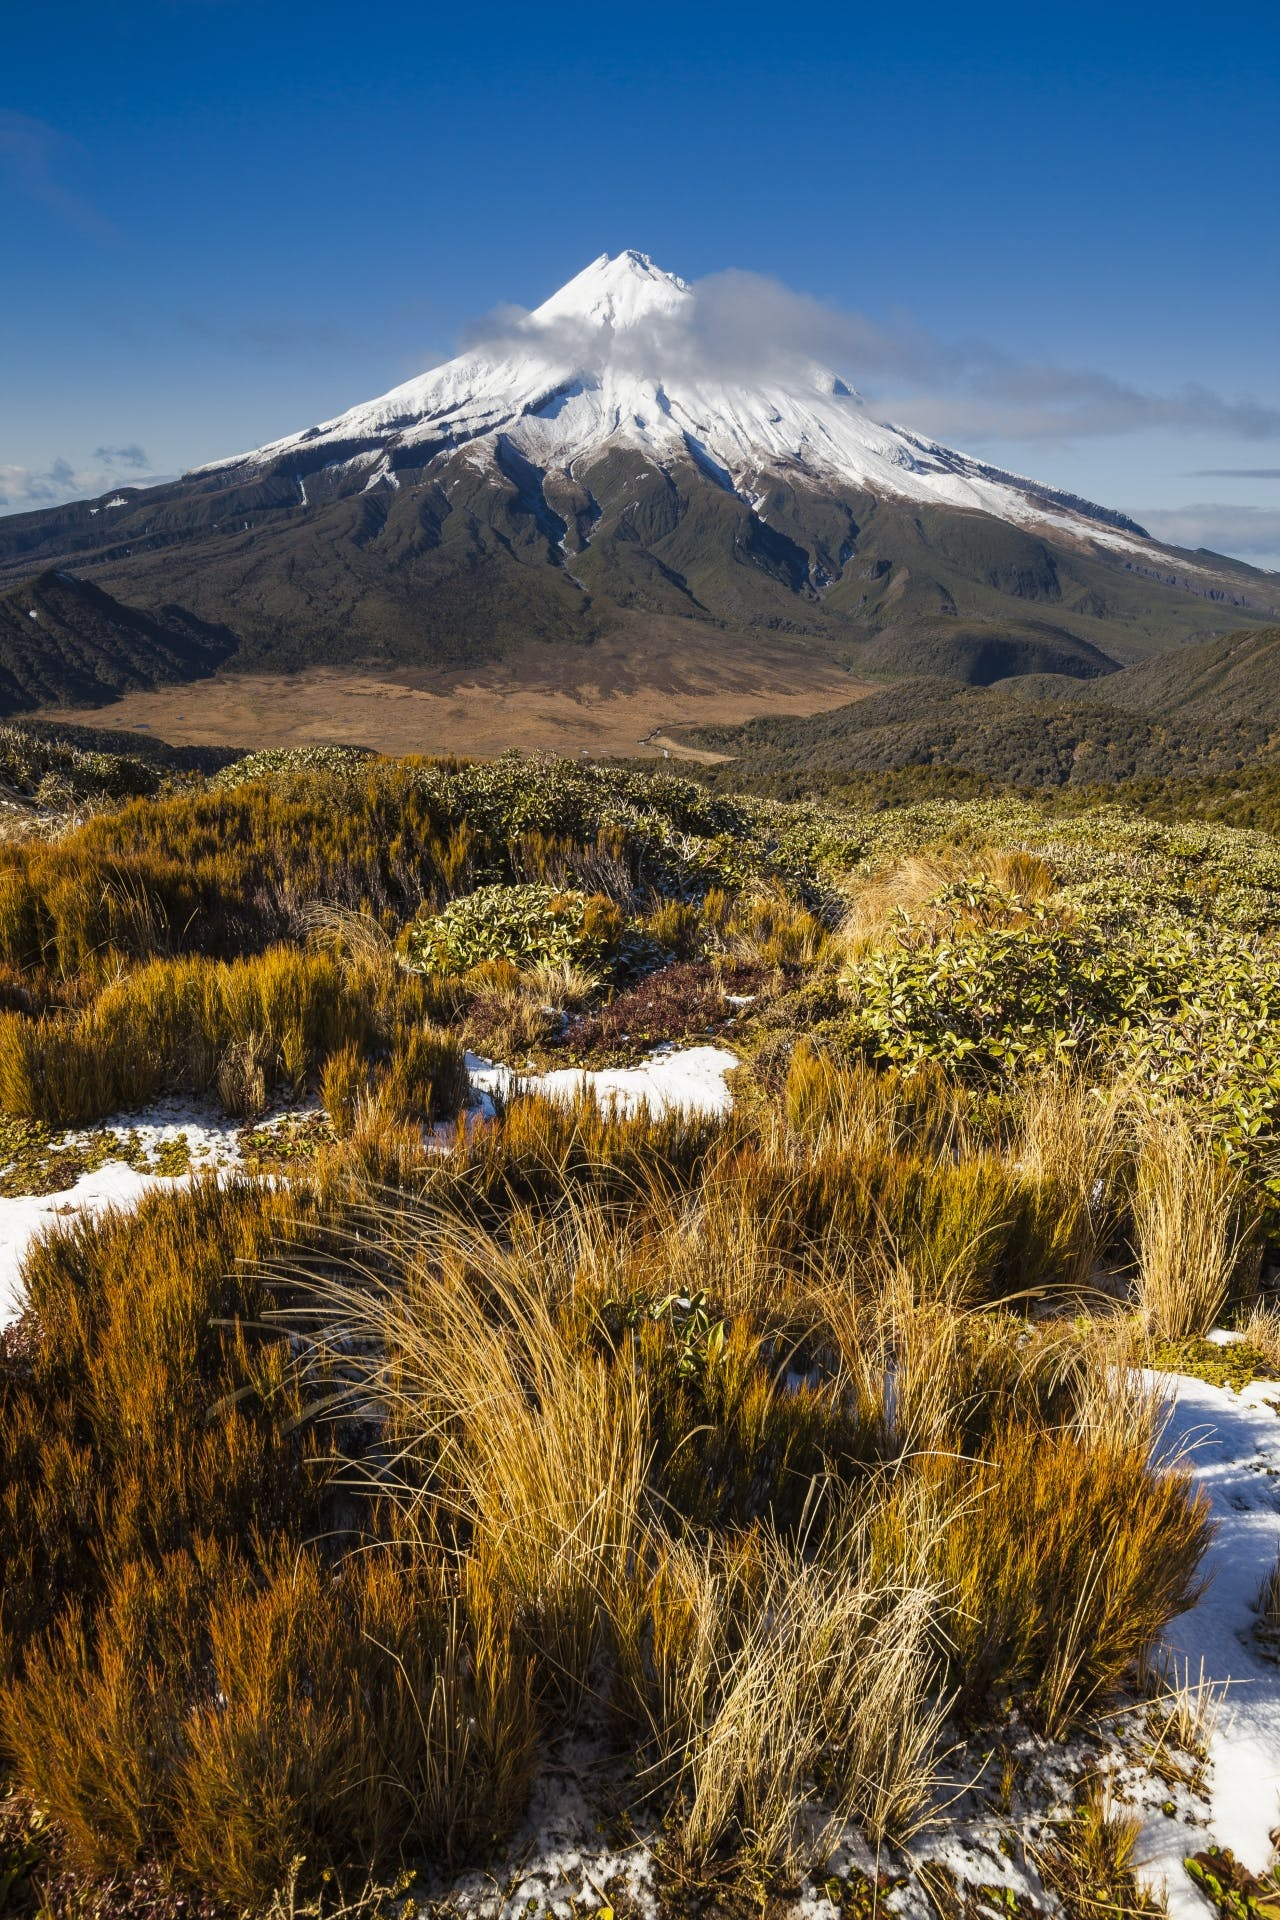 Views From Pouakai Range are arguably better than on the Tongariro northan circuit